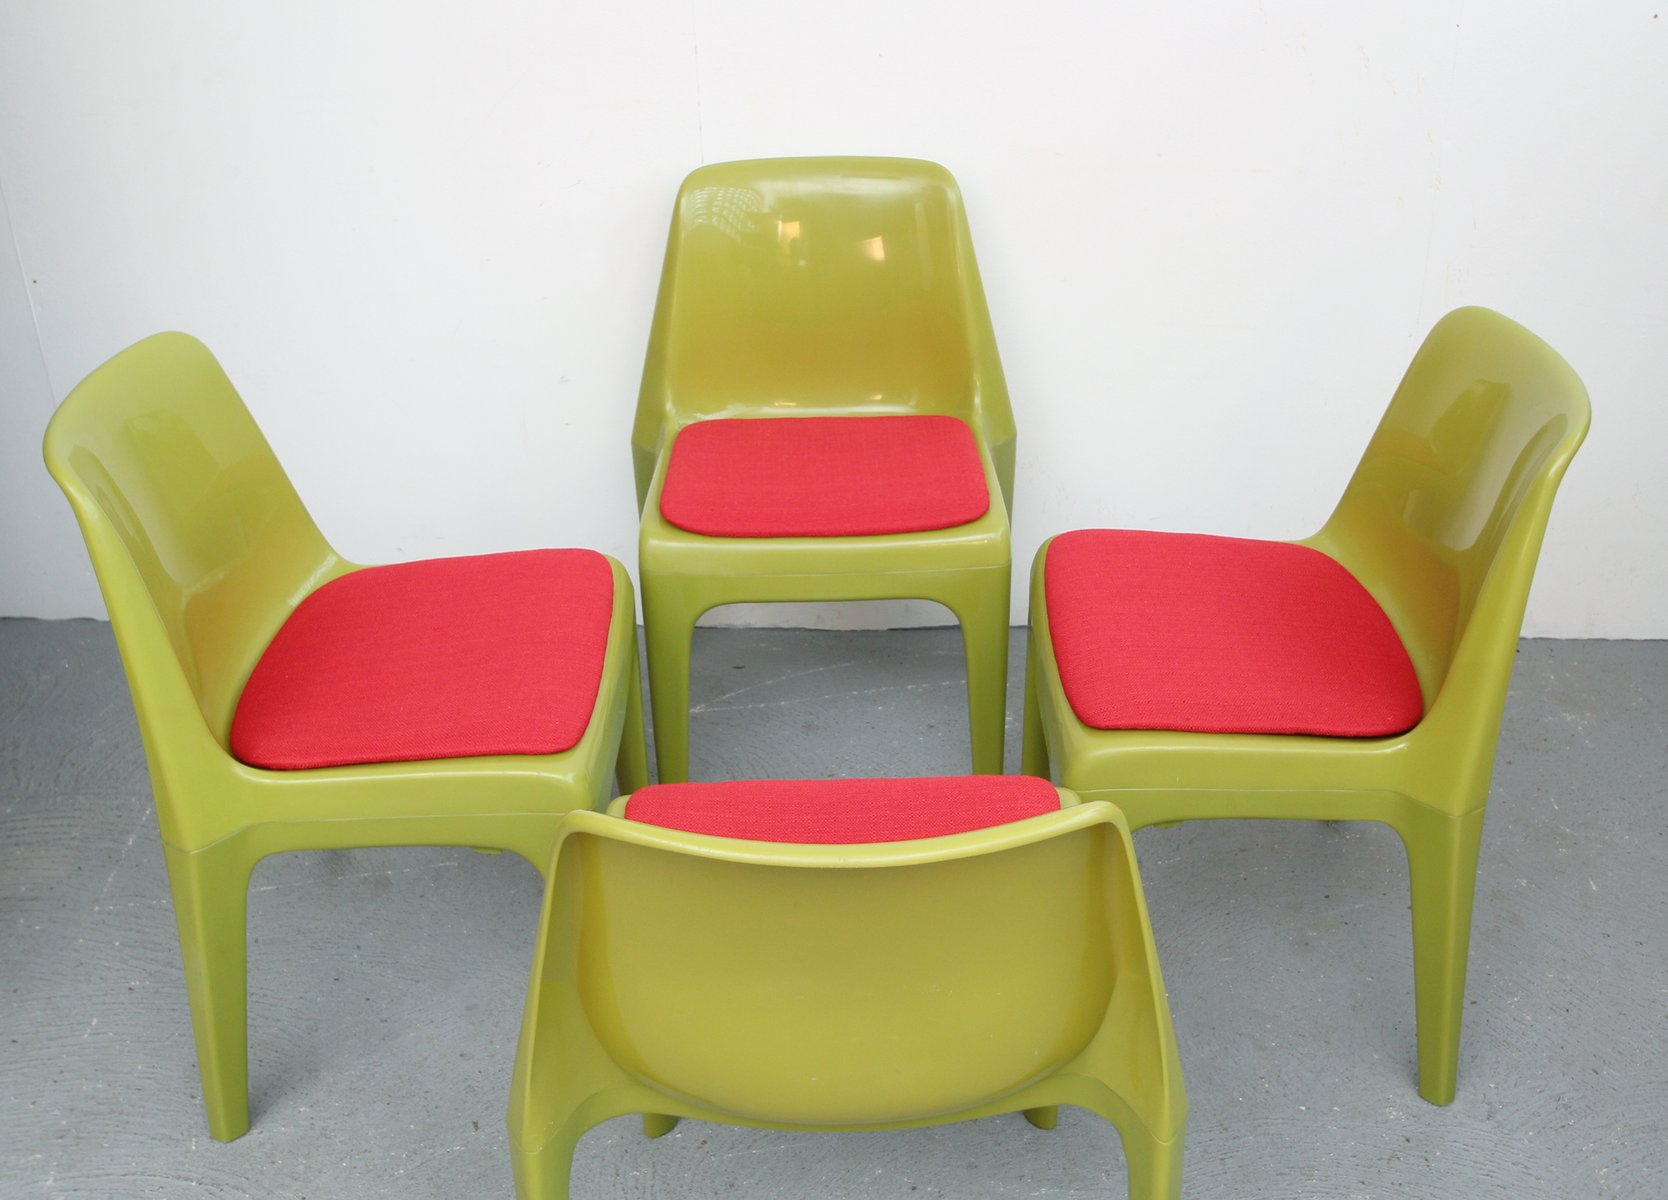 German Red and Green Plastic Chairs 1970s Set of 4 for sale at